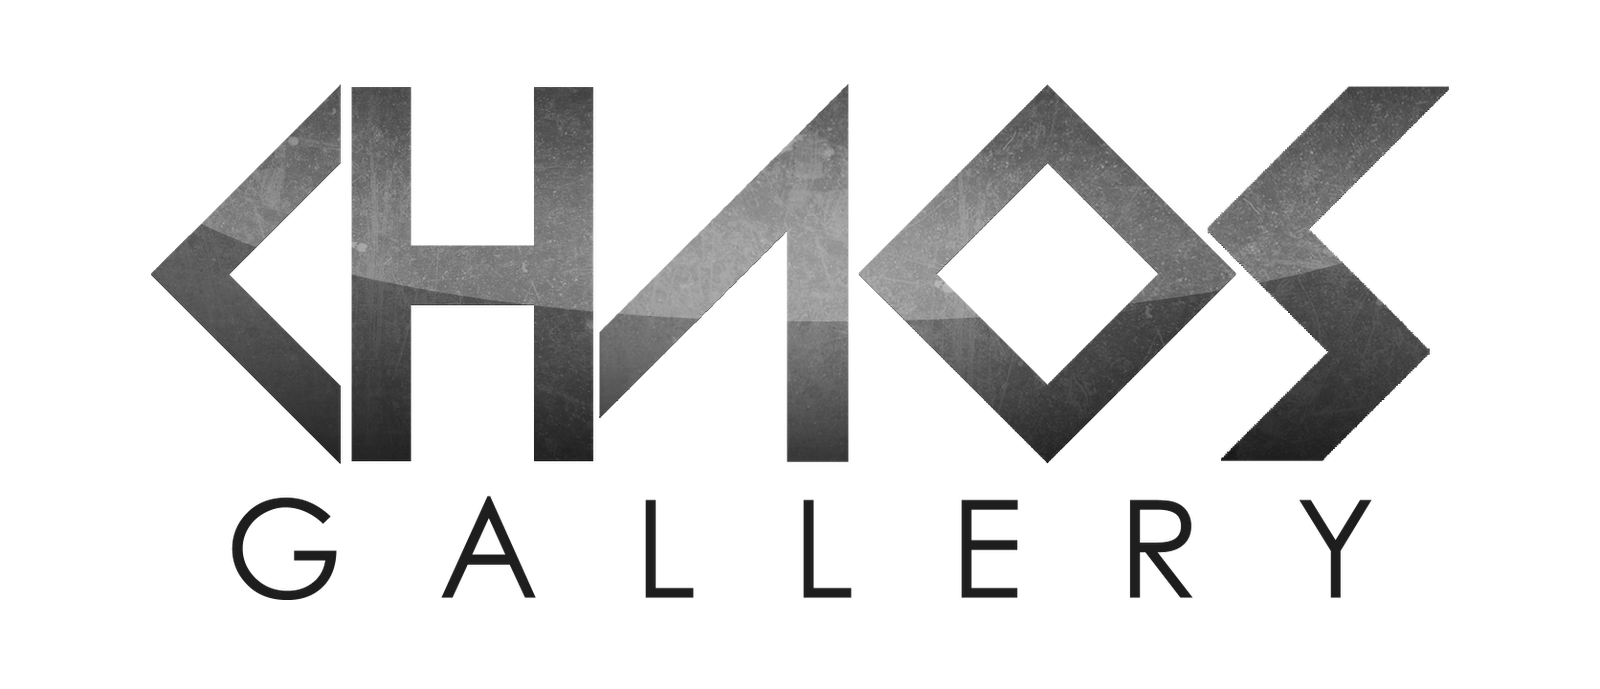 Chaos Gallery